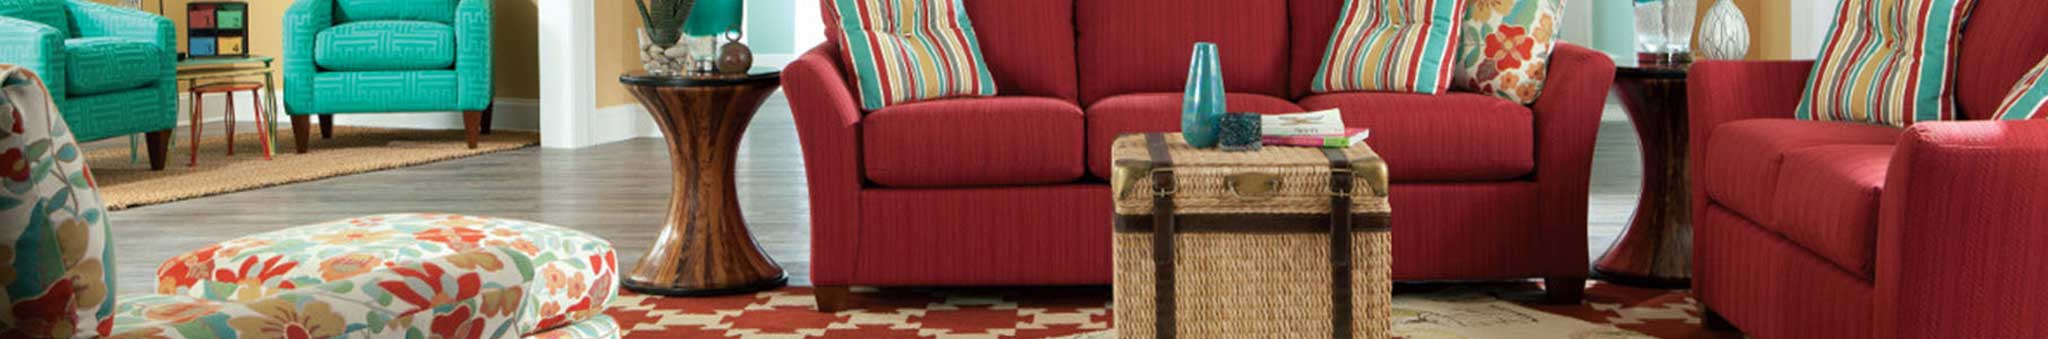 Wicker Furniture & Outdoor Furniture in Wollongong & the Illawarra Region